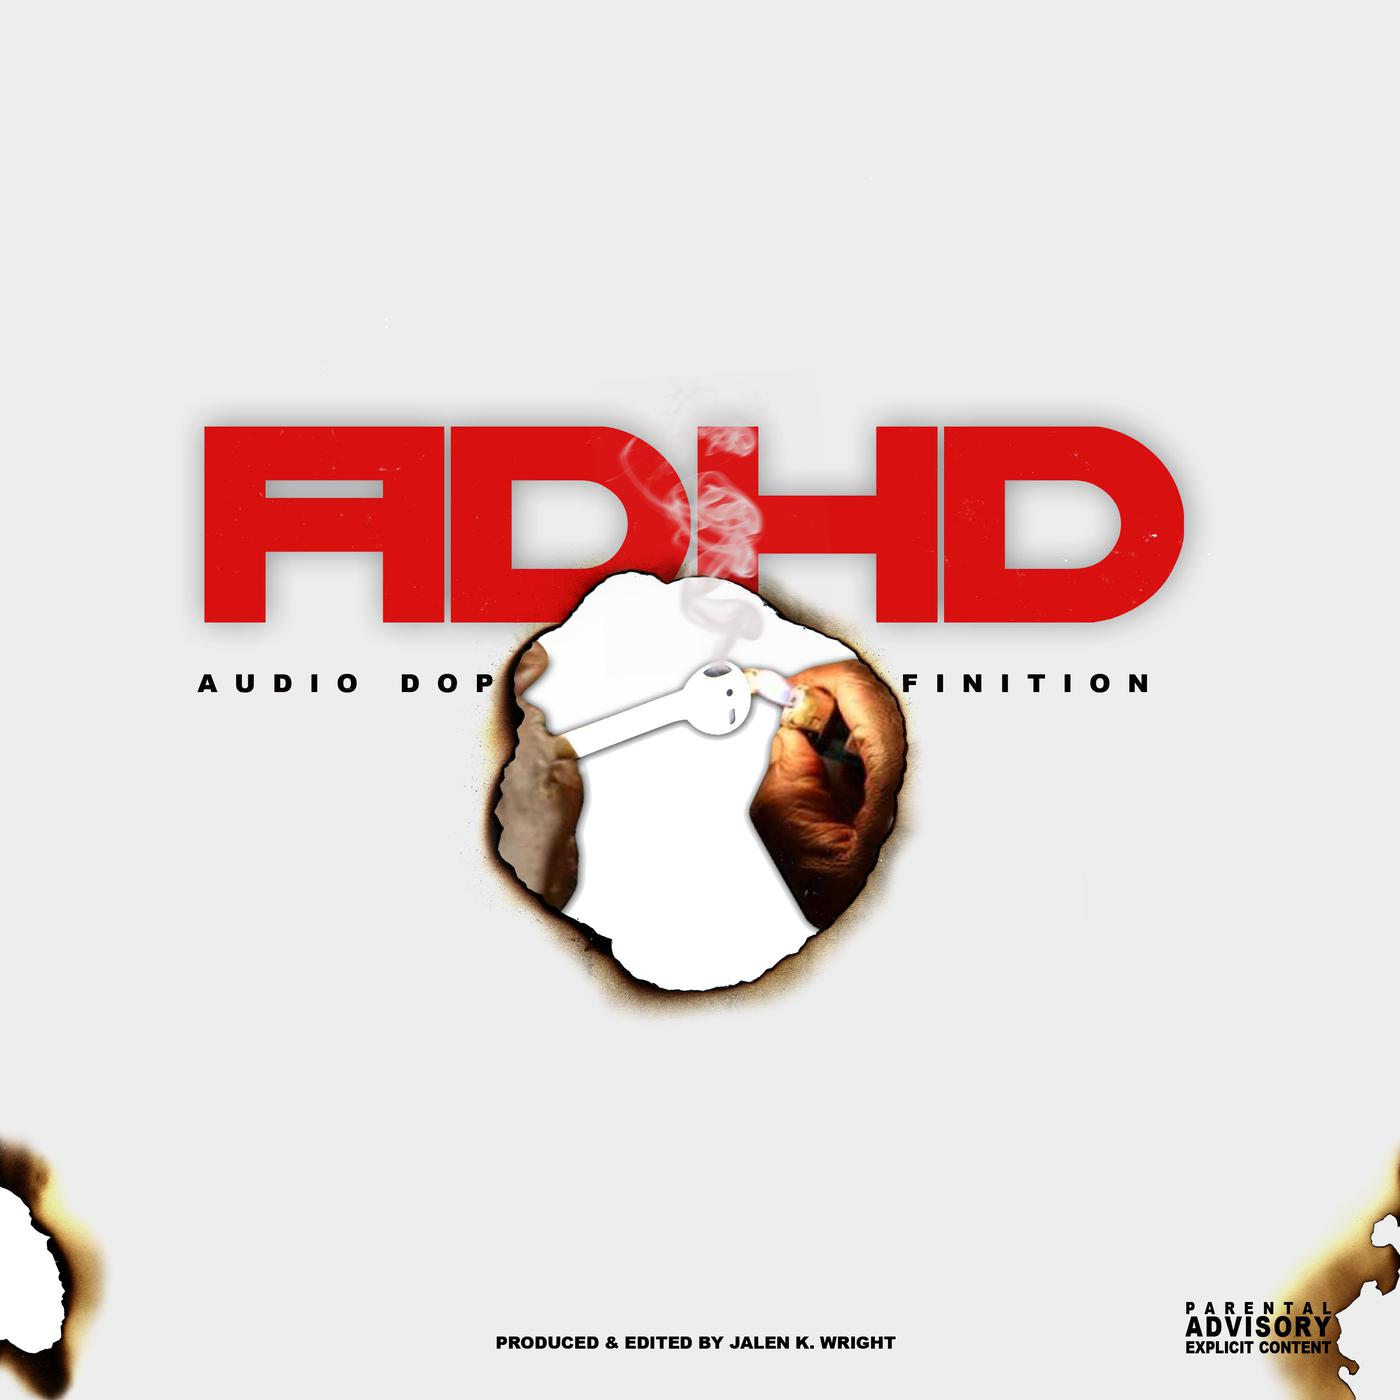 Audio Dope in High Definition (podcast) - Audio Dope in High